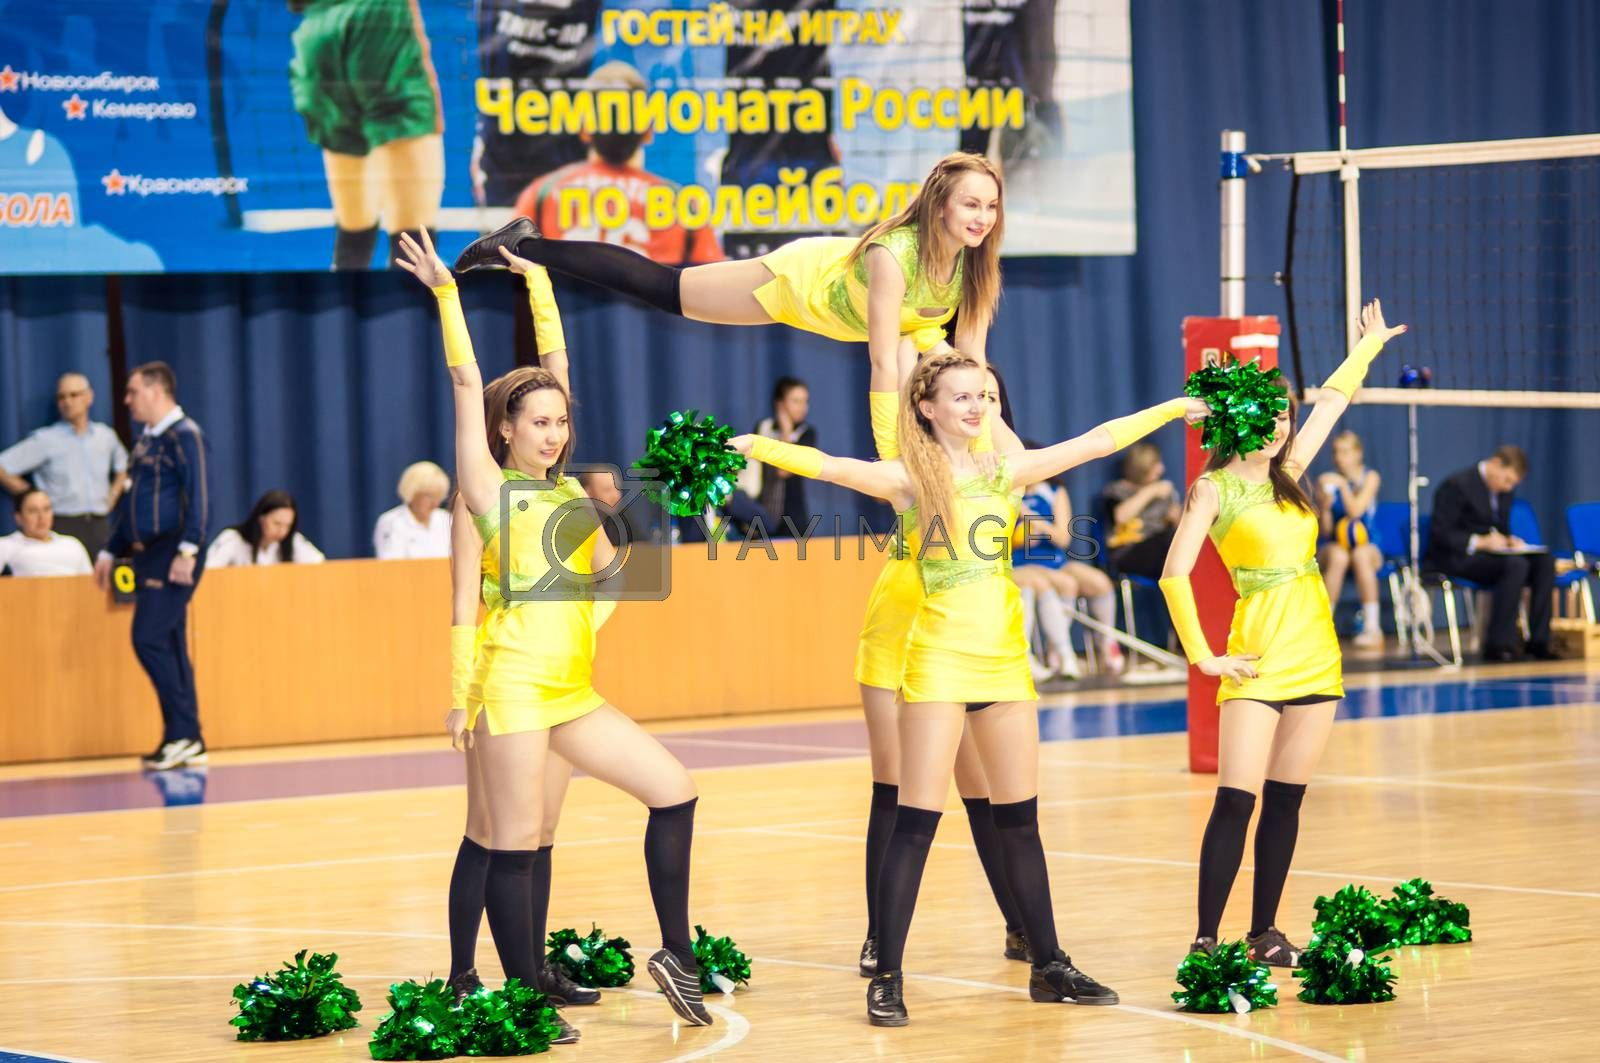 Girl cheerleading from the support team your favorite volleyball team by 0608195706081957